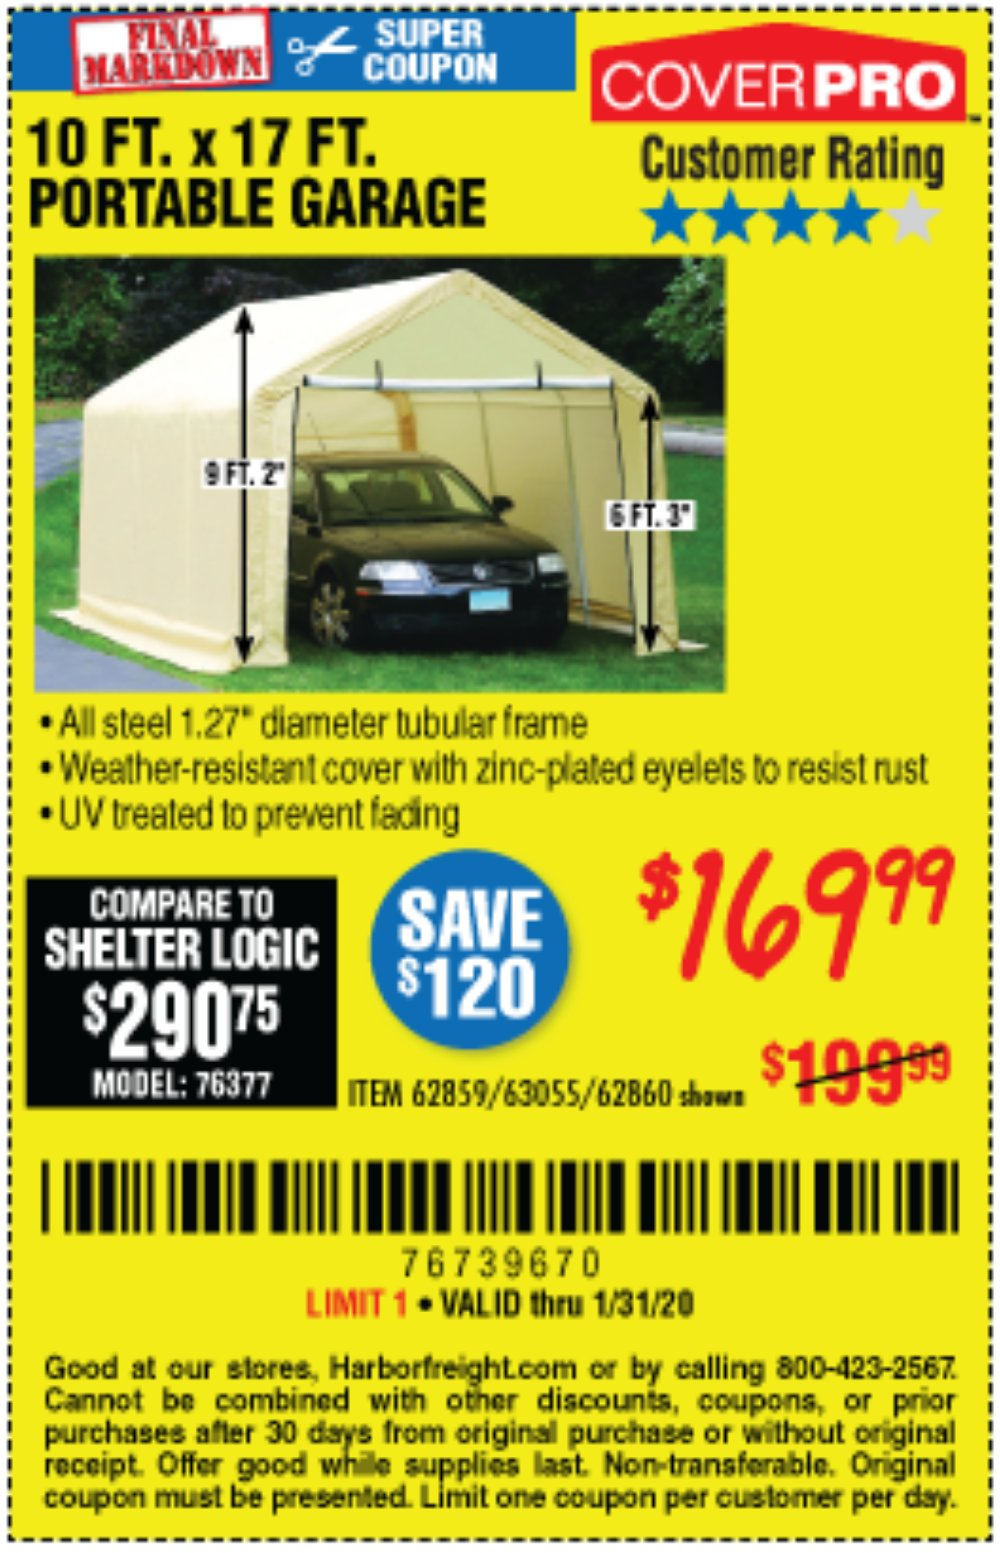 Harbor Freight Coupon, HF Coupons - 10 Ft. X 17ft. Portable Garage